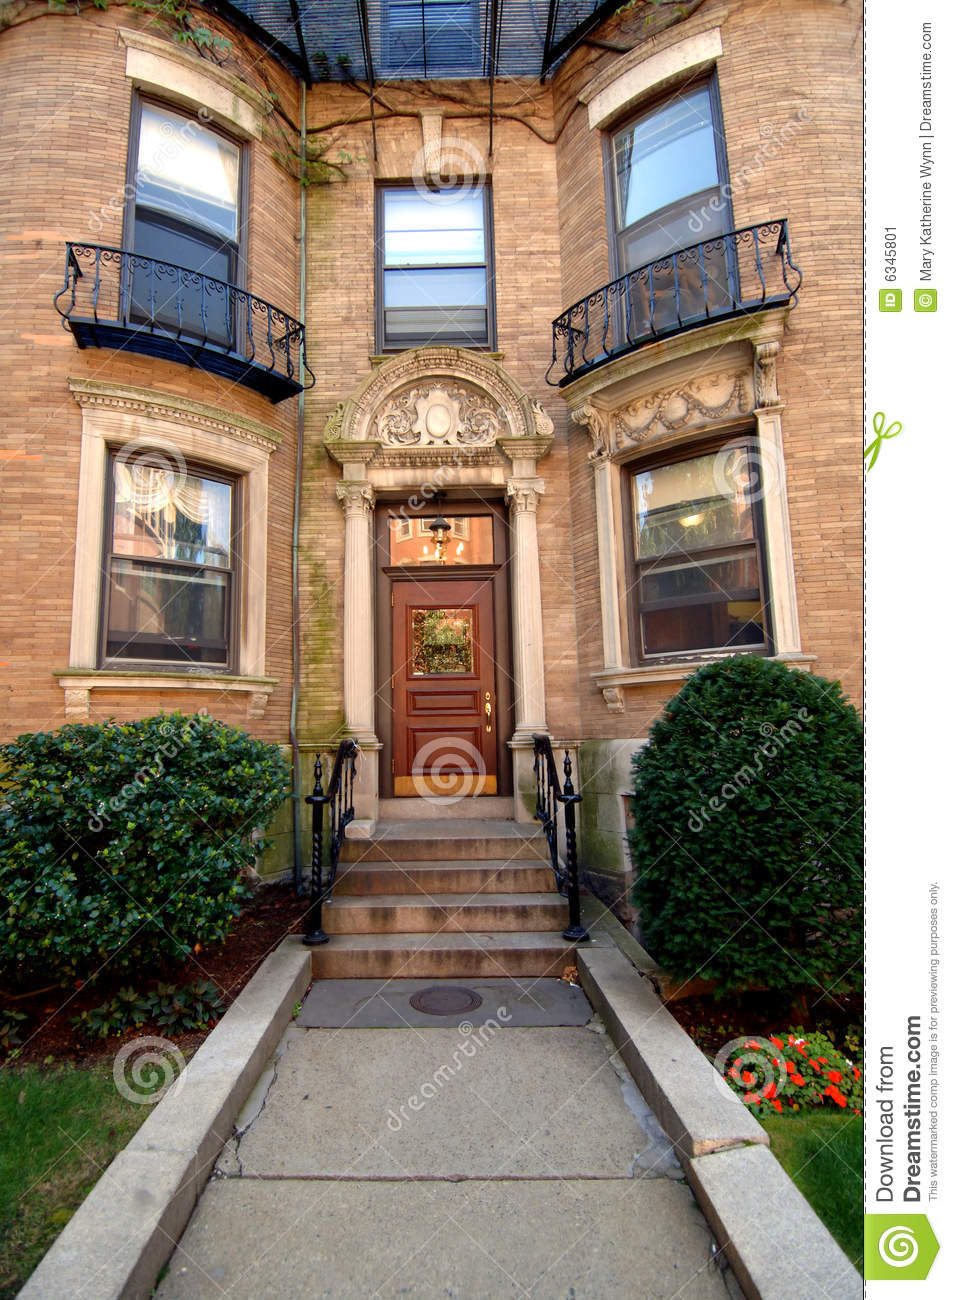 City apartment entrance stock image Image of house front